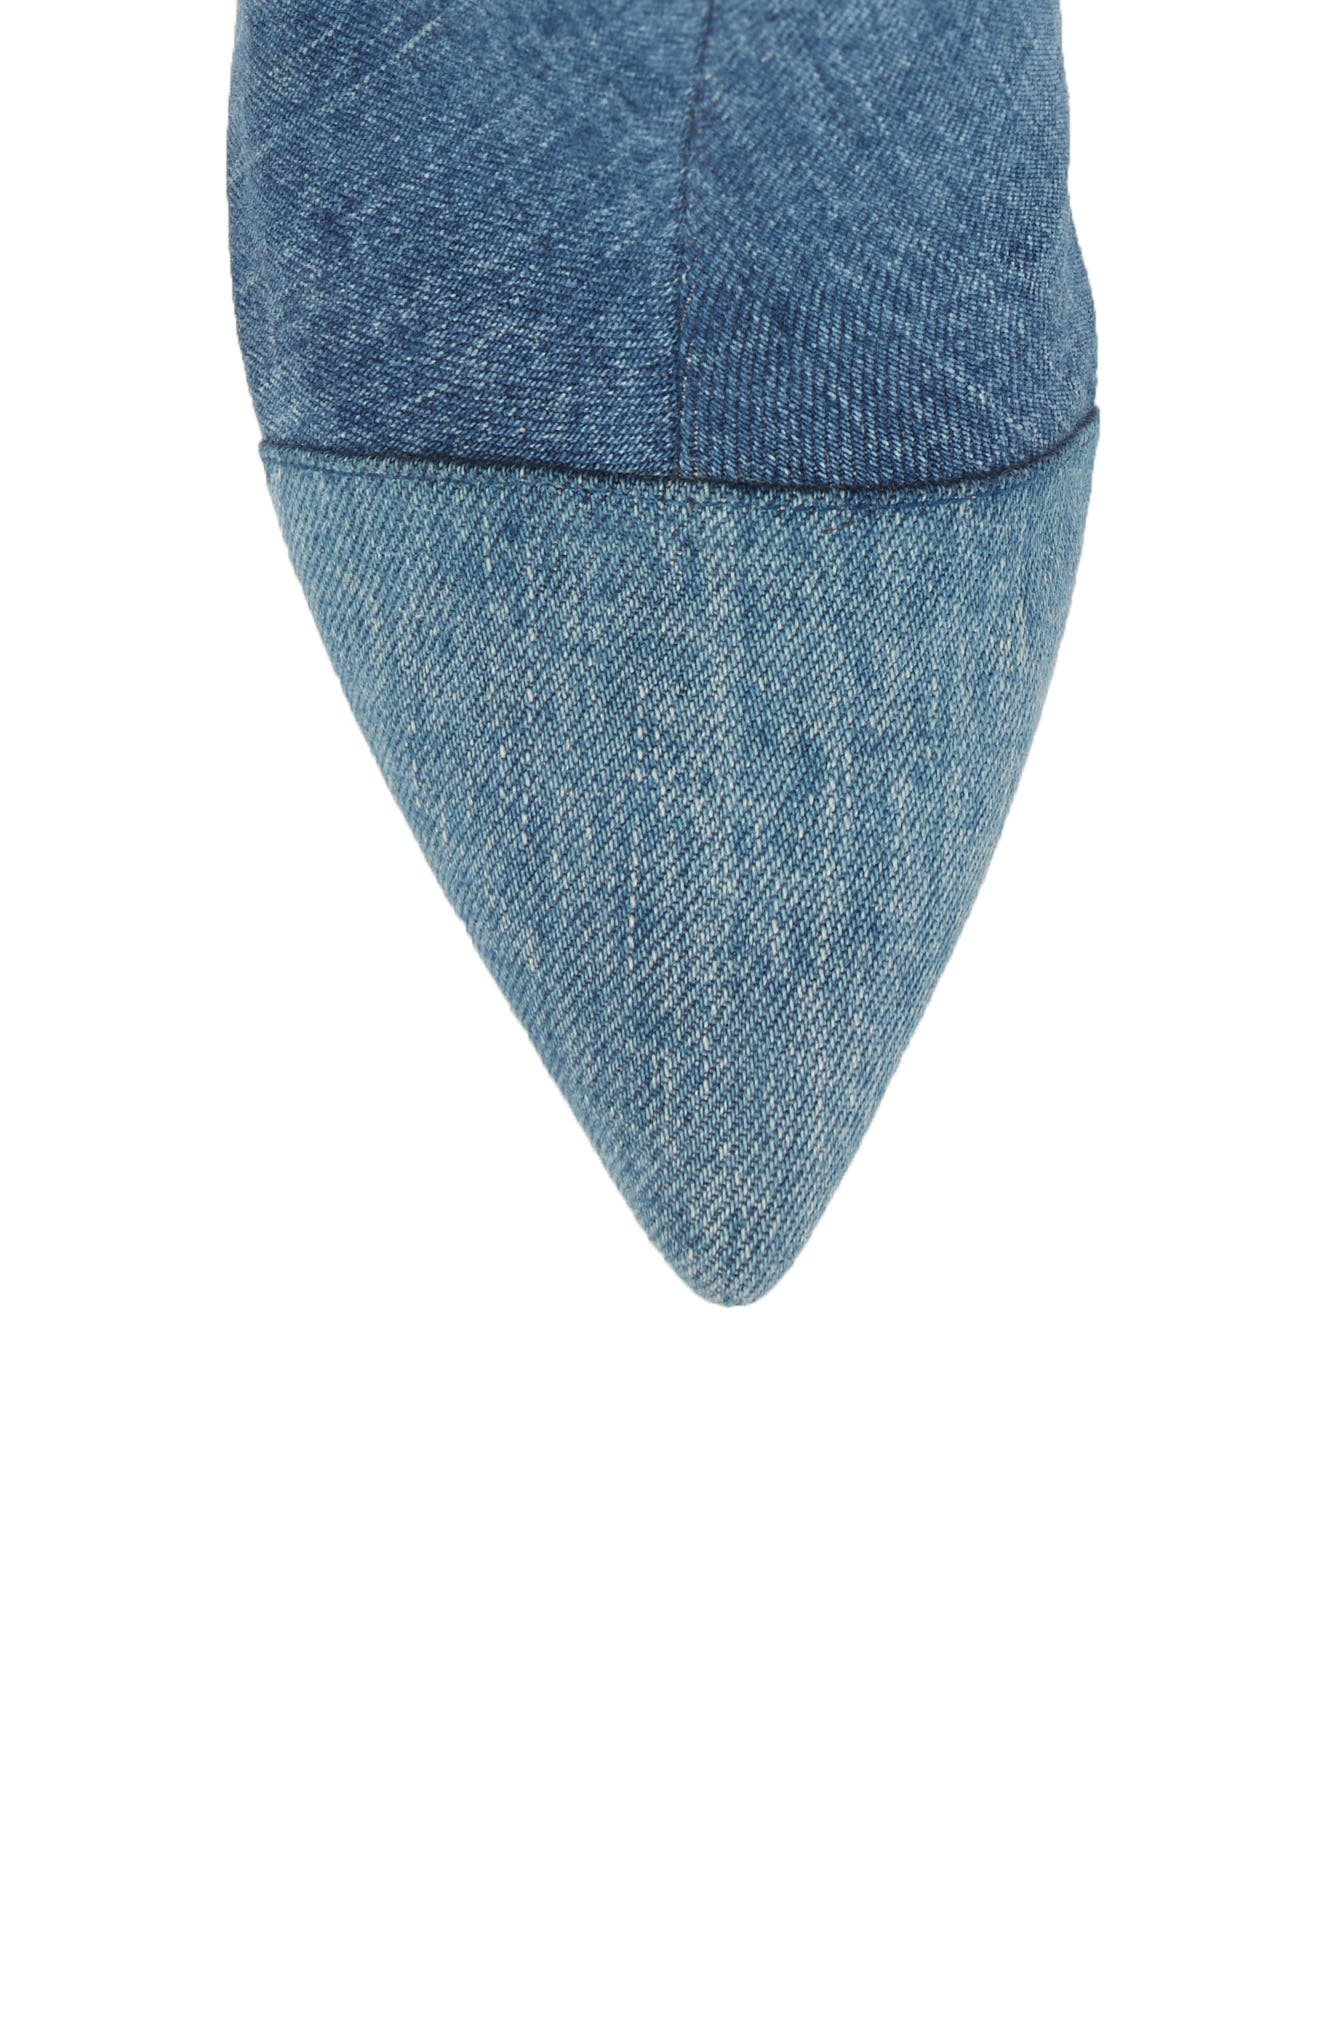 Finite Block Heel Bootie,                             Alternate thumbnail 5, color,                             BLUE DENIM